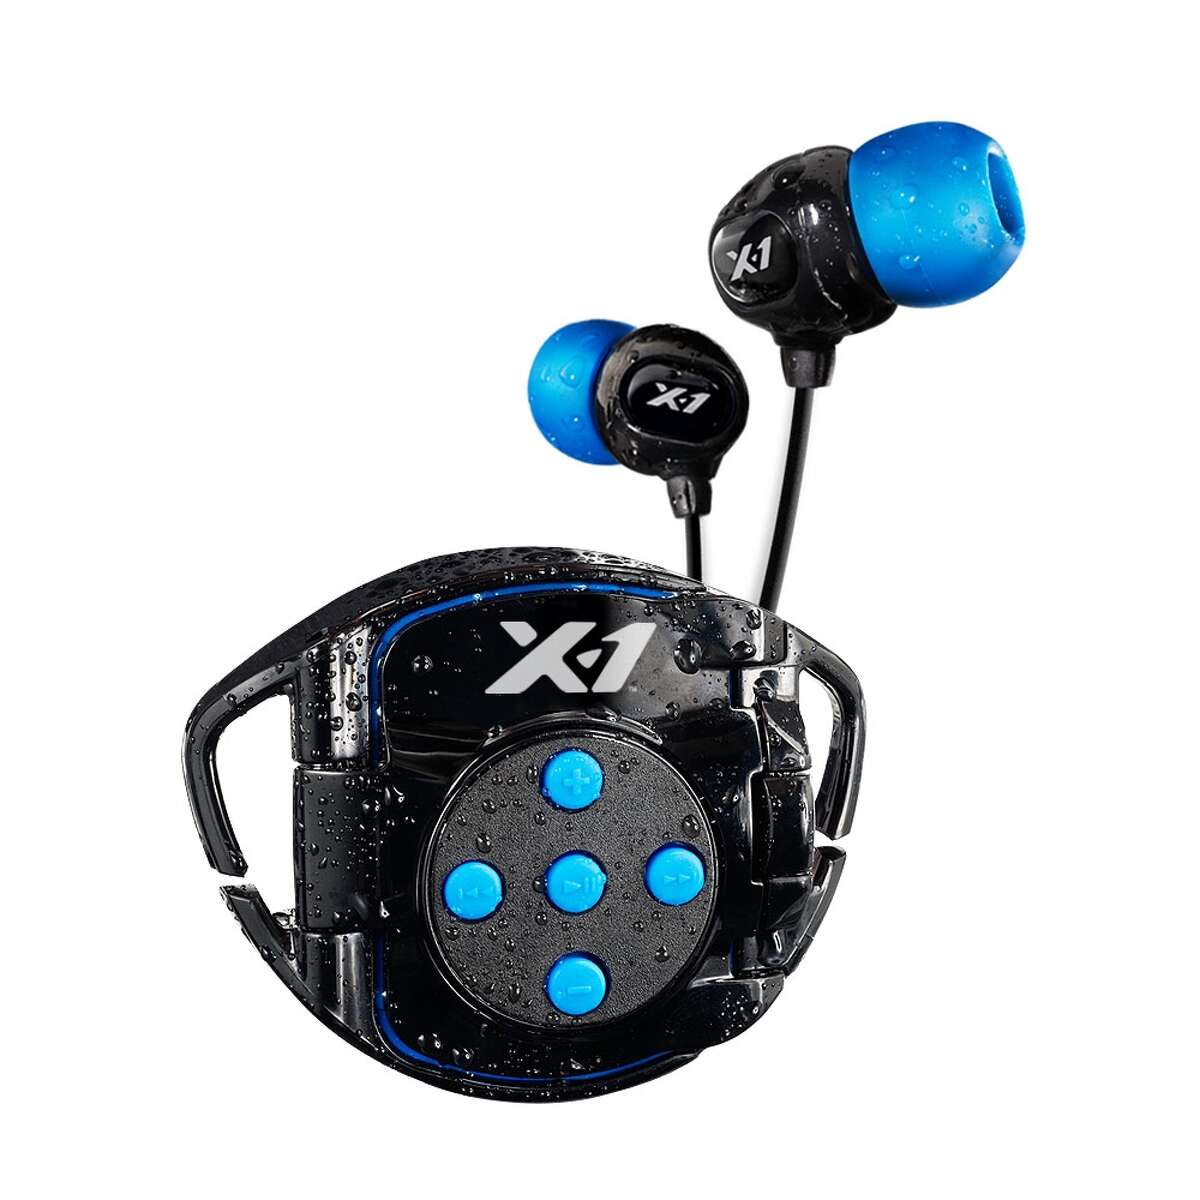 X-1 Interval 4G Waterproof Headphone System You know from the cardio room that the right playlist can pump you up and keep you moving faster and longer. And now, headphones aren't just for sports that take place on dry land. The X-1 system doesn't require any effort to format or move your tunes onto a new system; instead, it's designed to work with an iPod Shuffle, encasing it in a waterproof case and attaching to your goggles for a quick and easy transition. Buy it: $99 at The Sports Authority, Sun & Ski Sports